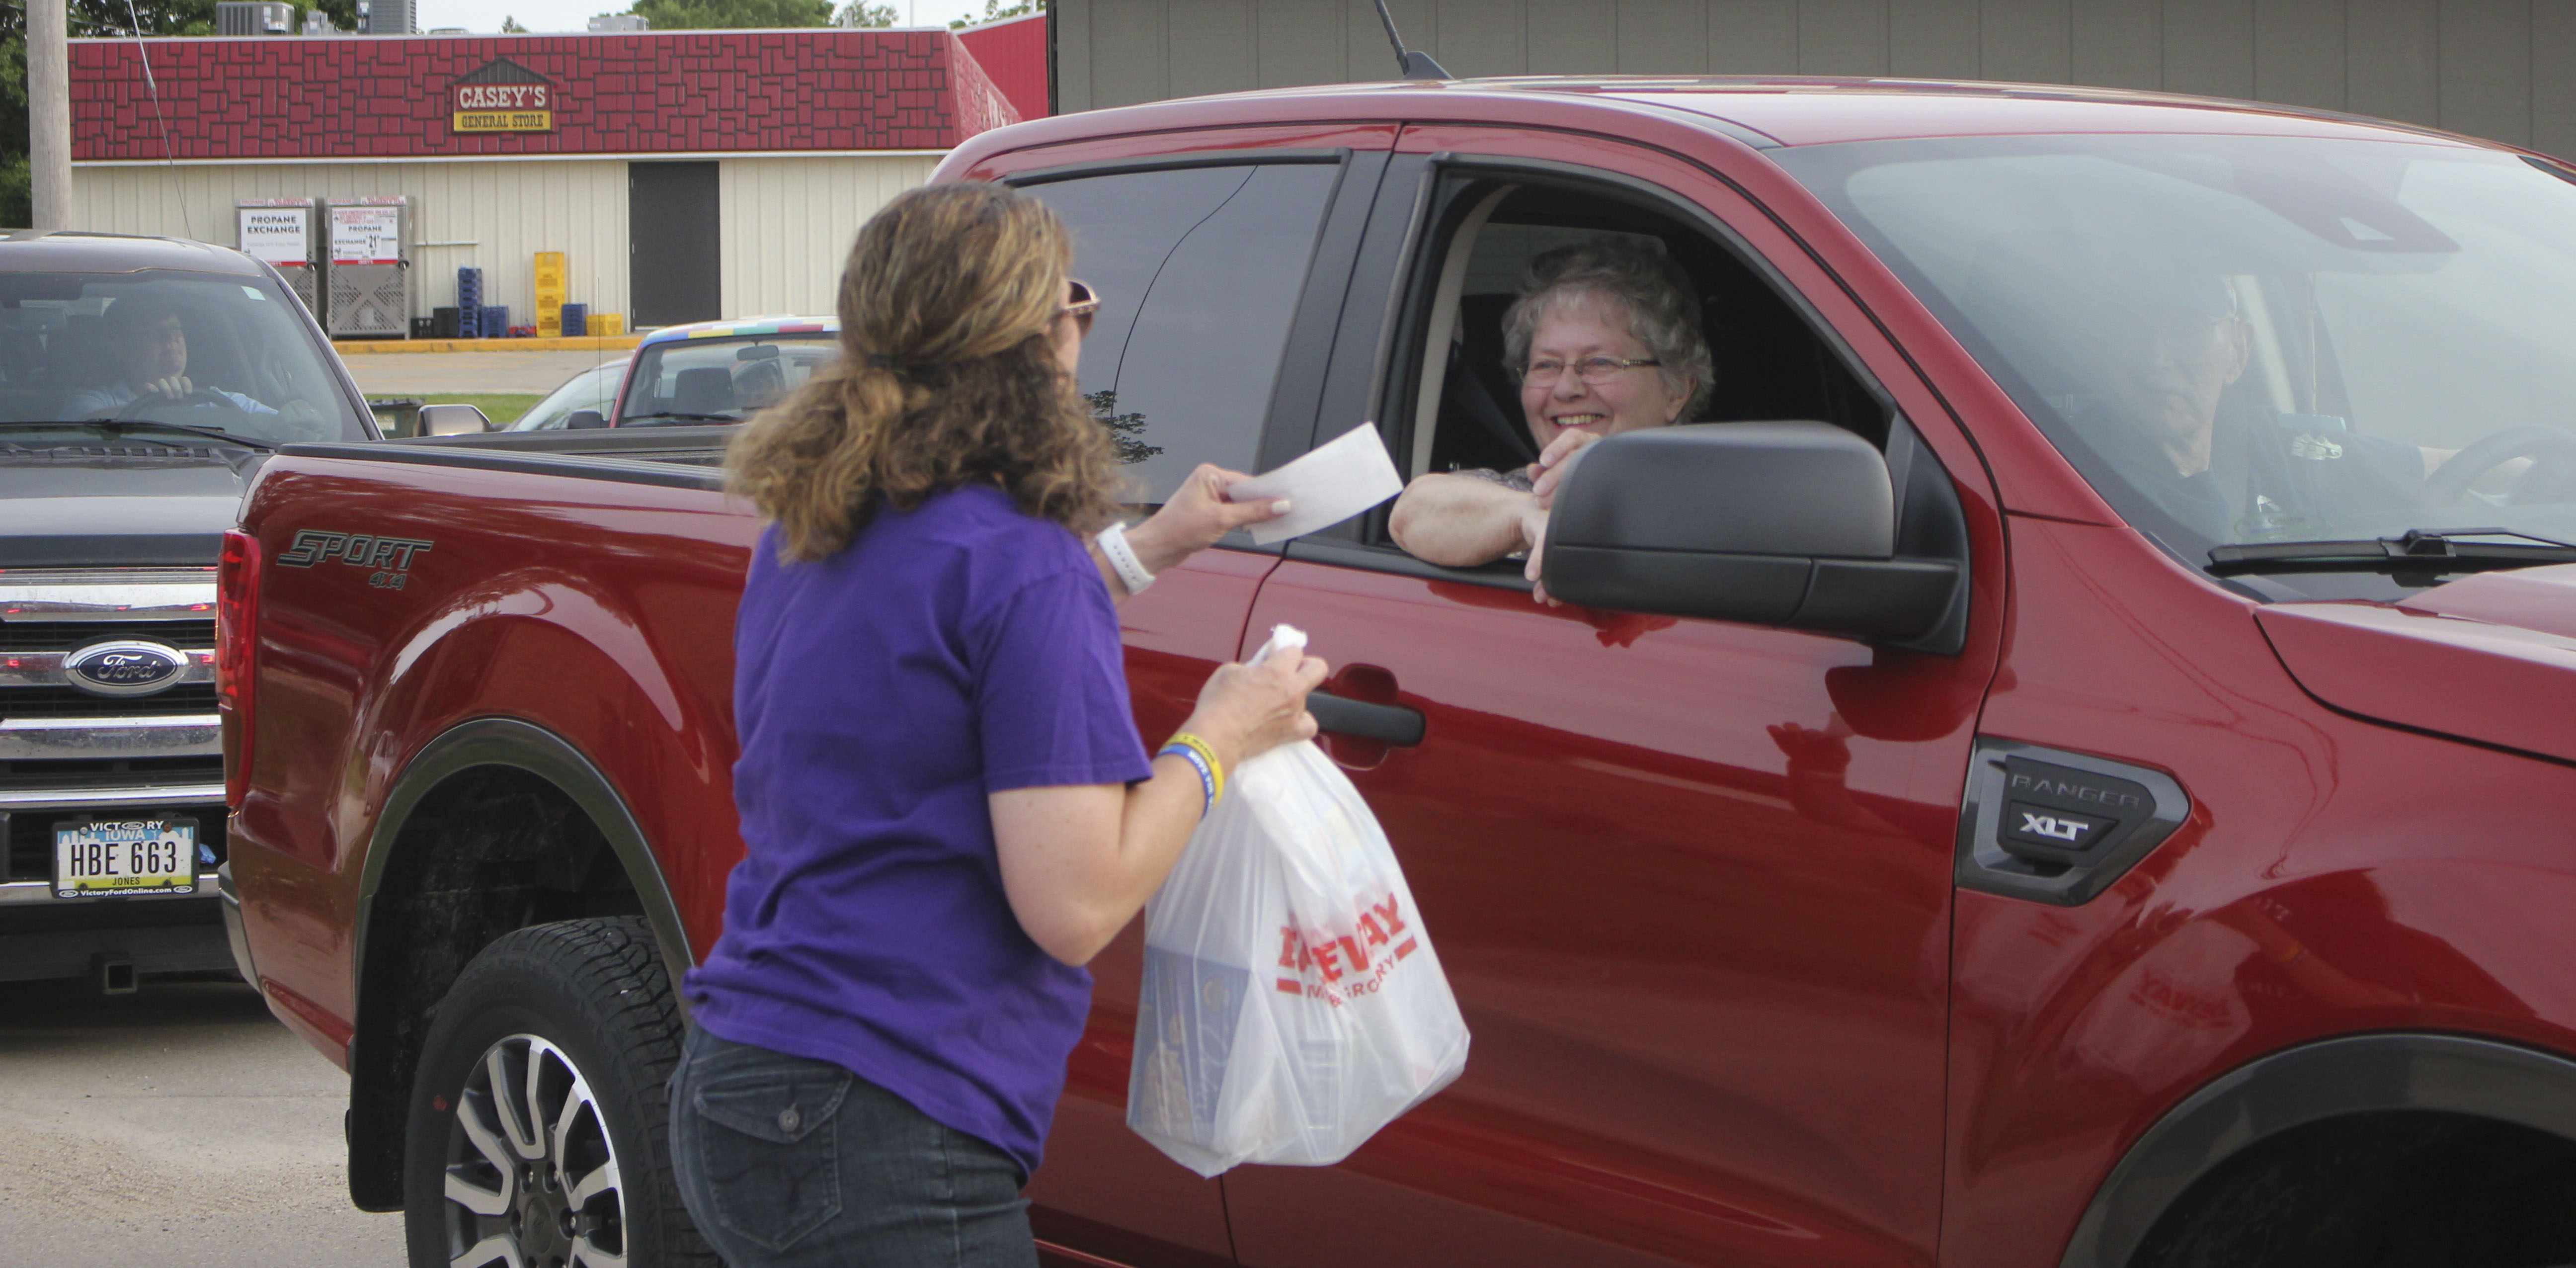 Phyllis Tapken (in vehicle) makes a donation, collected by Carrie Manternach, during the Saturday night cruise night June 6 in Monticello. Vehicles cruised the loop between Diamond Pi and Regions Bank. The event totaled $649 in donations for Jones County Relay for Life, as well as many goods for the Monticello Food Pantry. (Photos by Pete Temple)